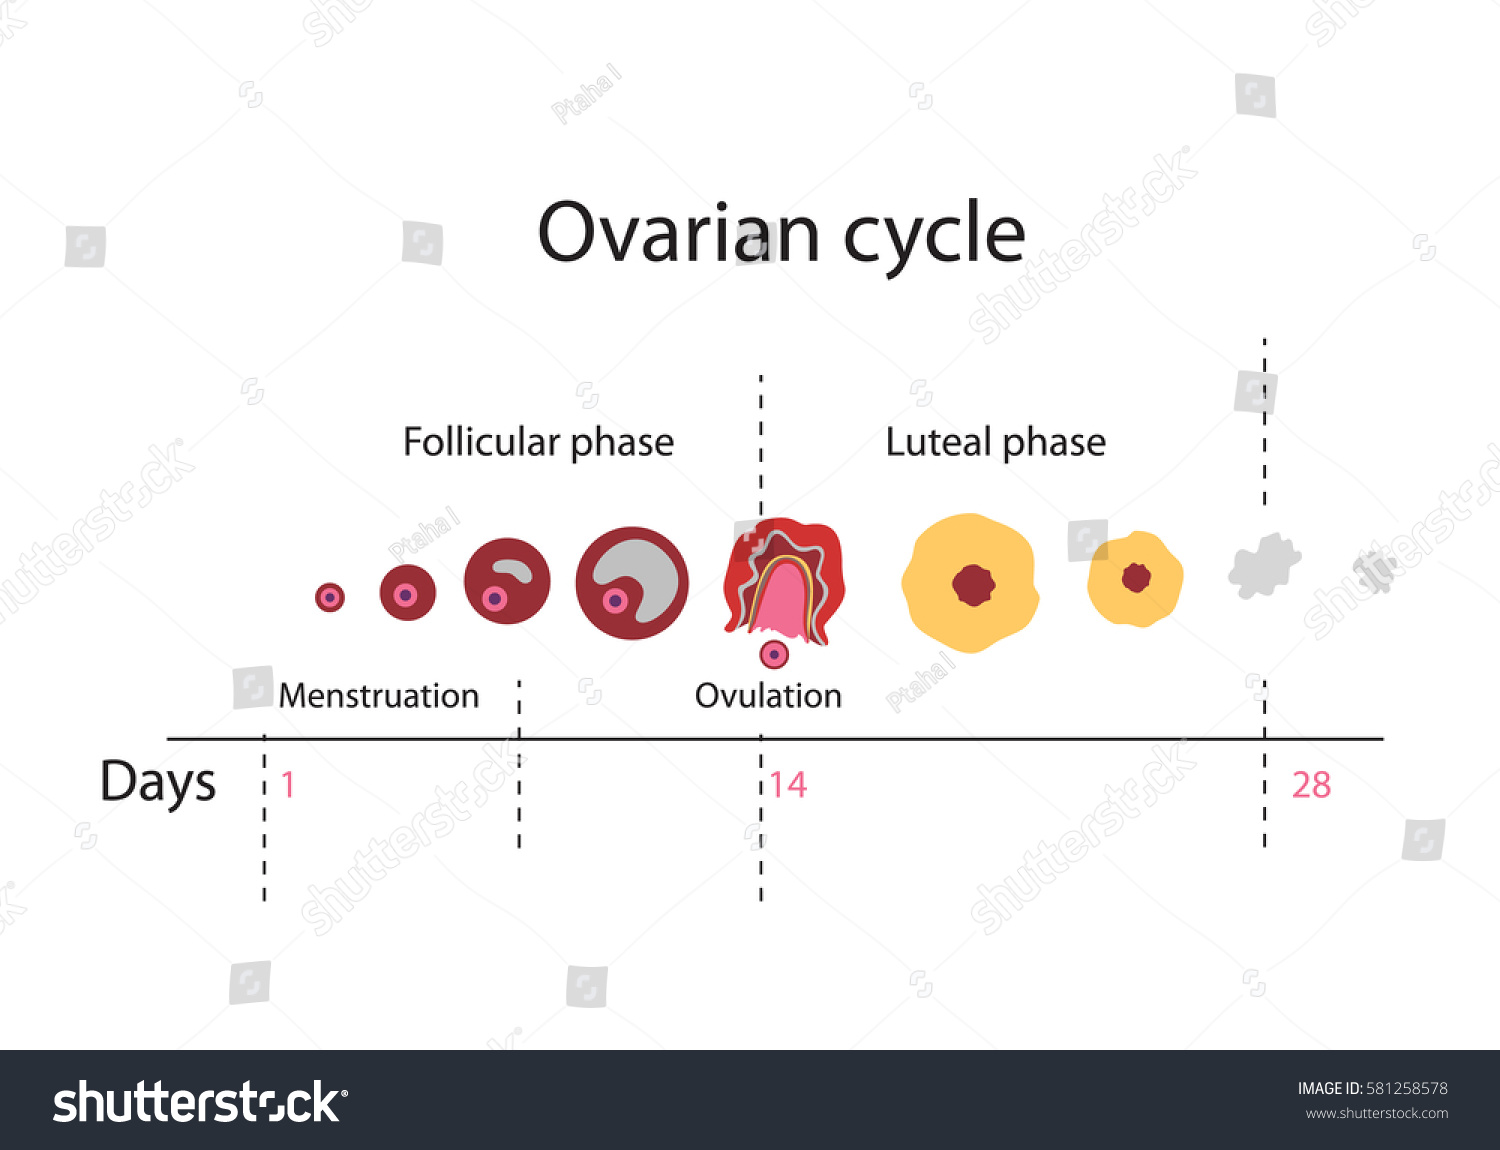 menstrual cycle diagram with ovulation autometer electric water temp gauge wiring chart showing ovarian stock vector 581258578 - shutterstock